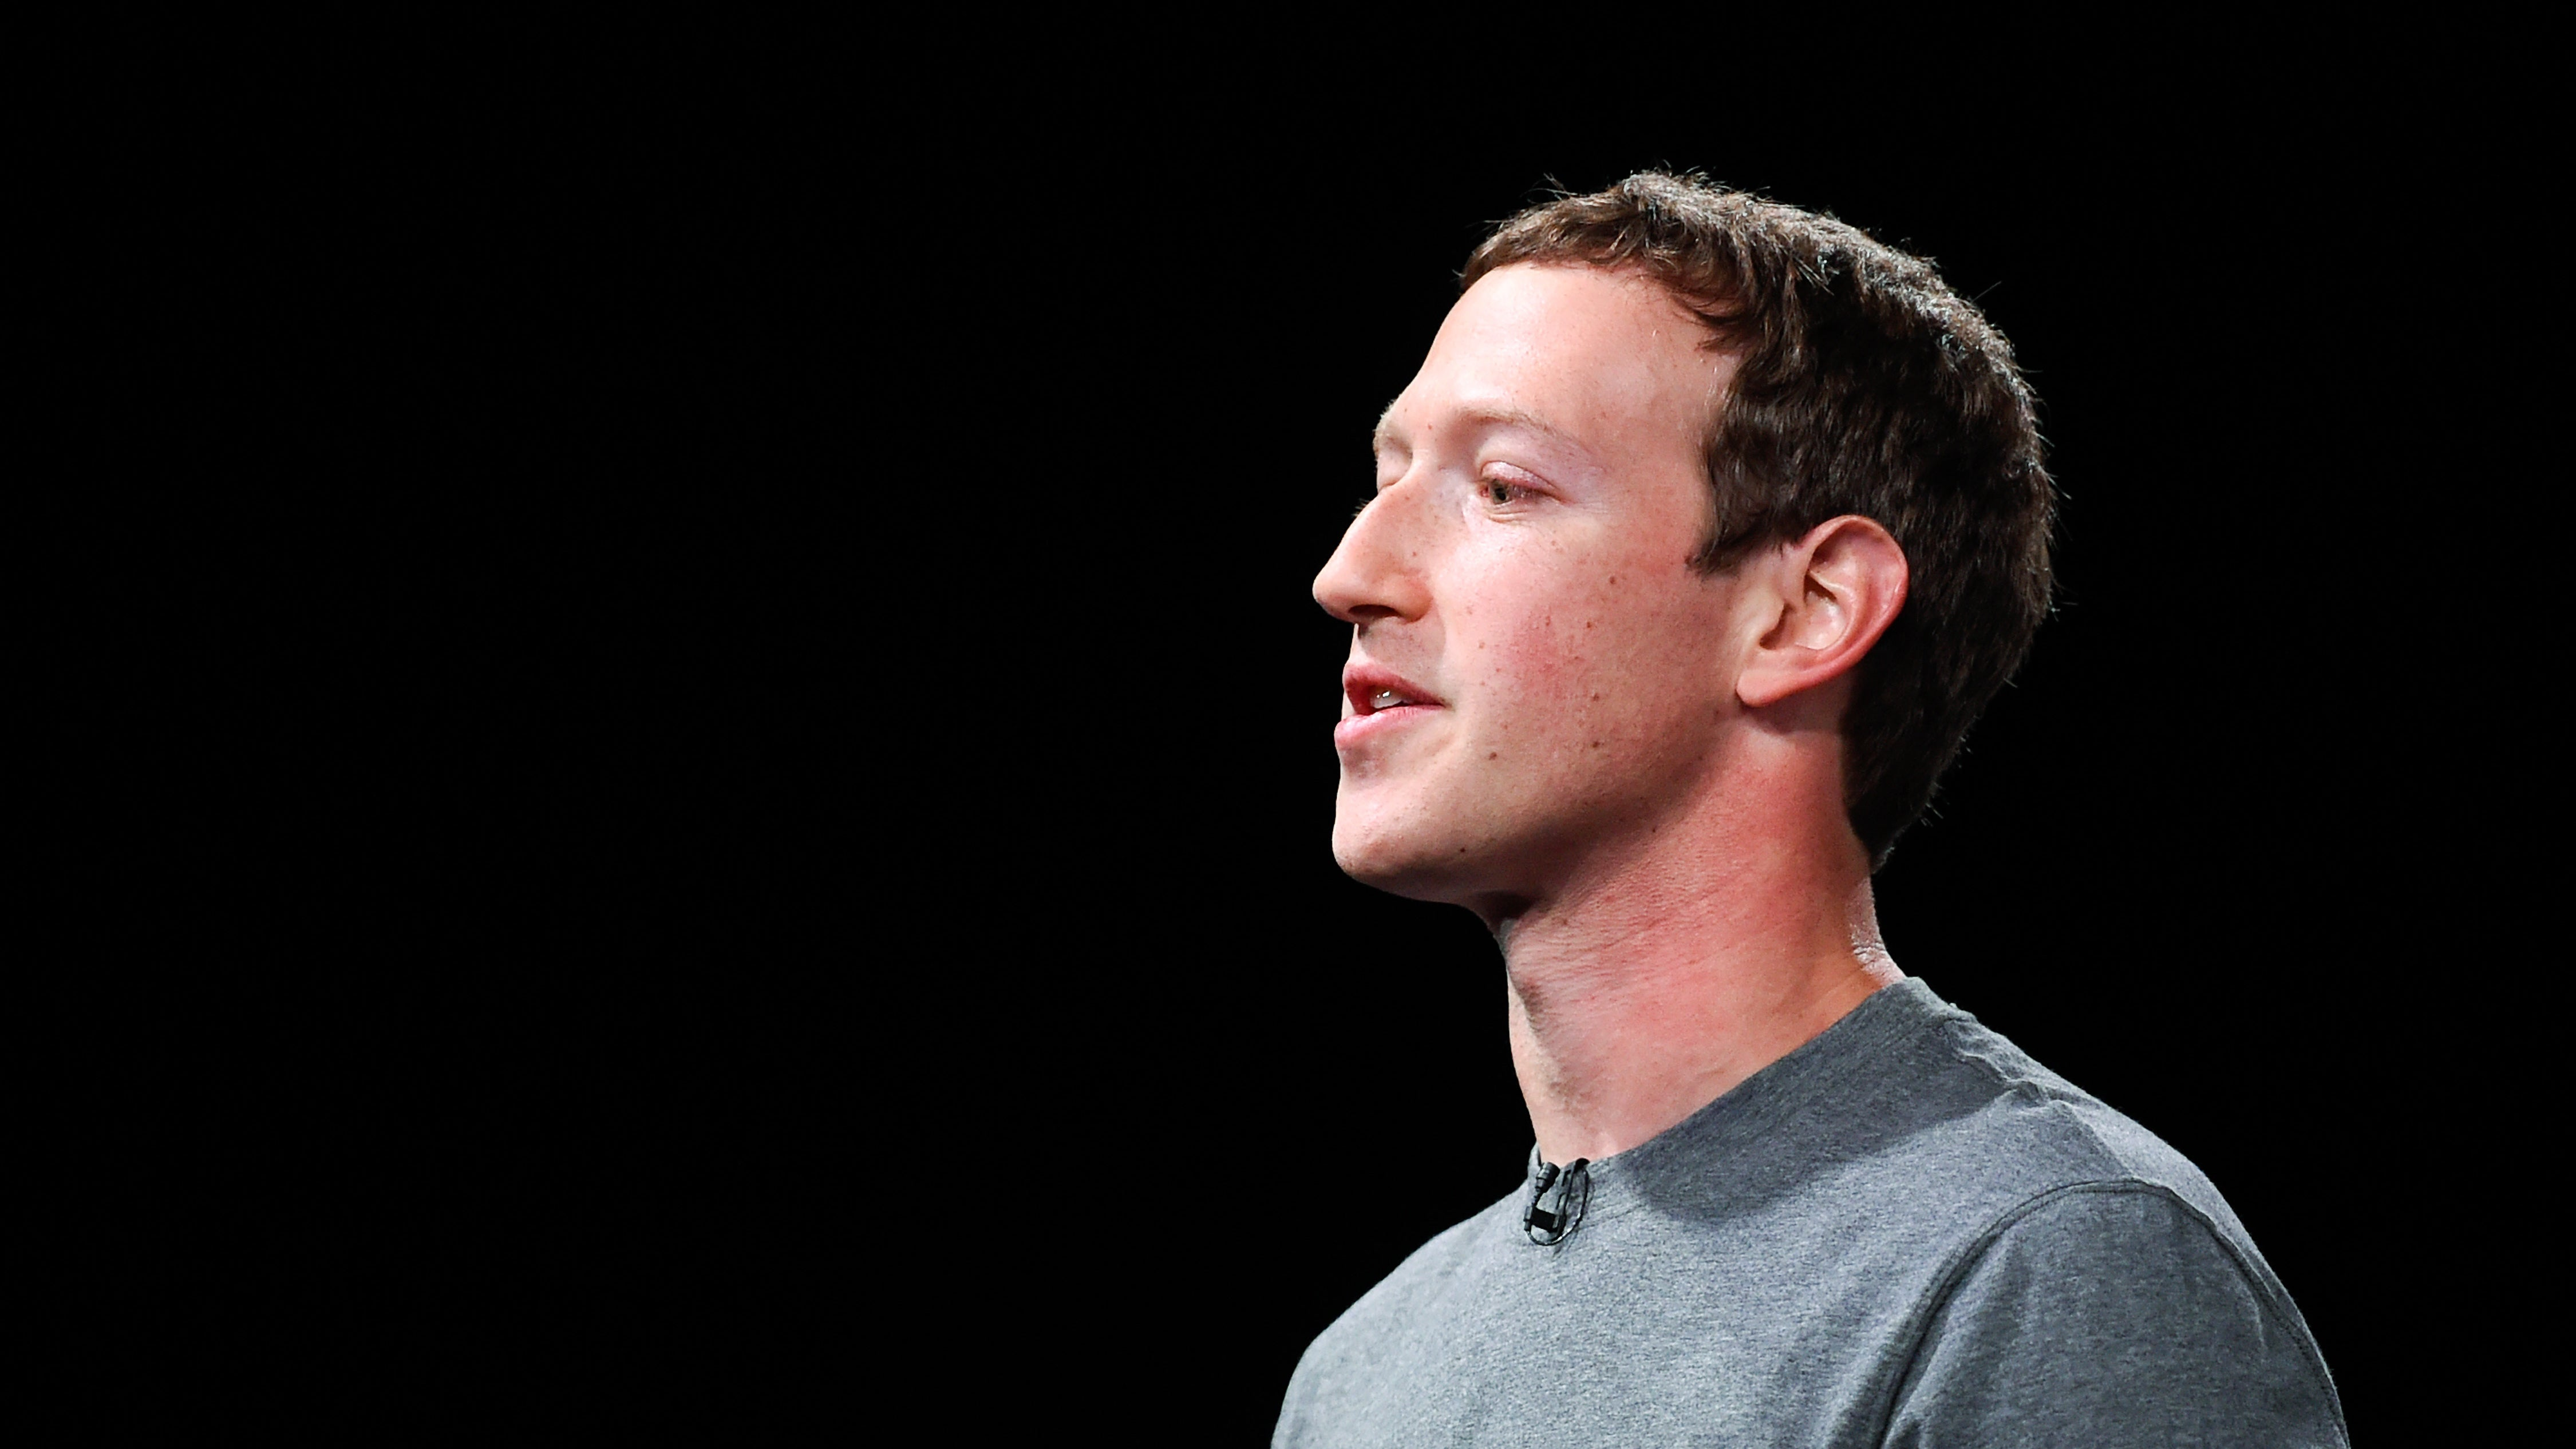 Mark Zuckerberg Is Still Pissed That We Know About His Army Of Handlers